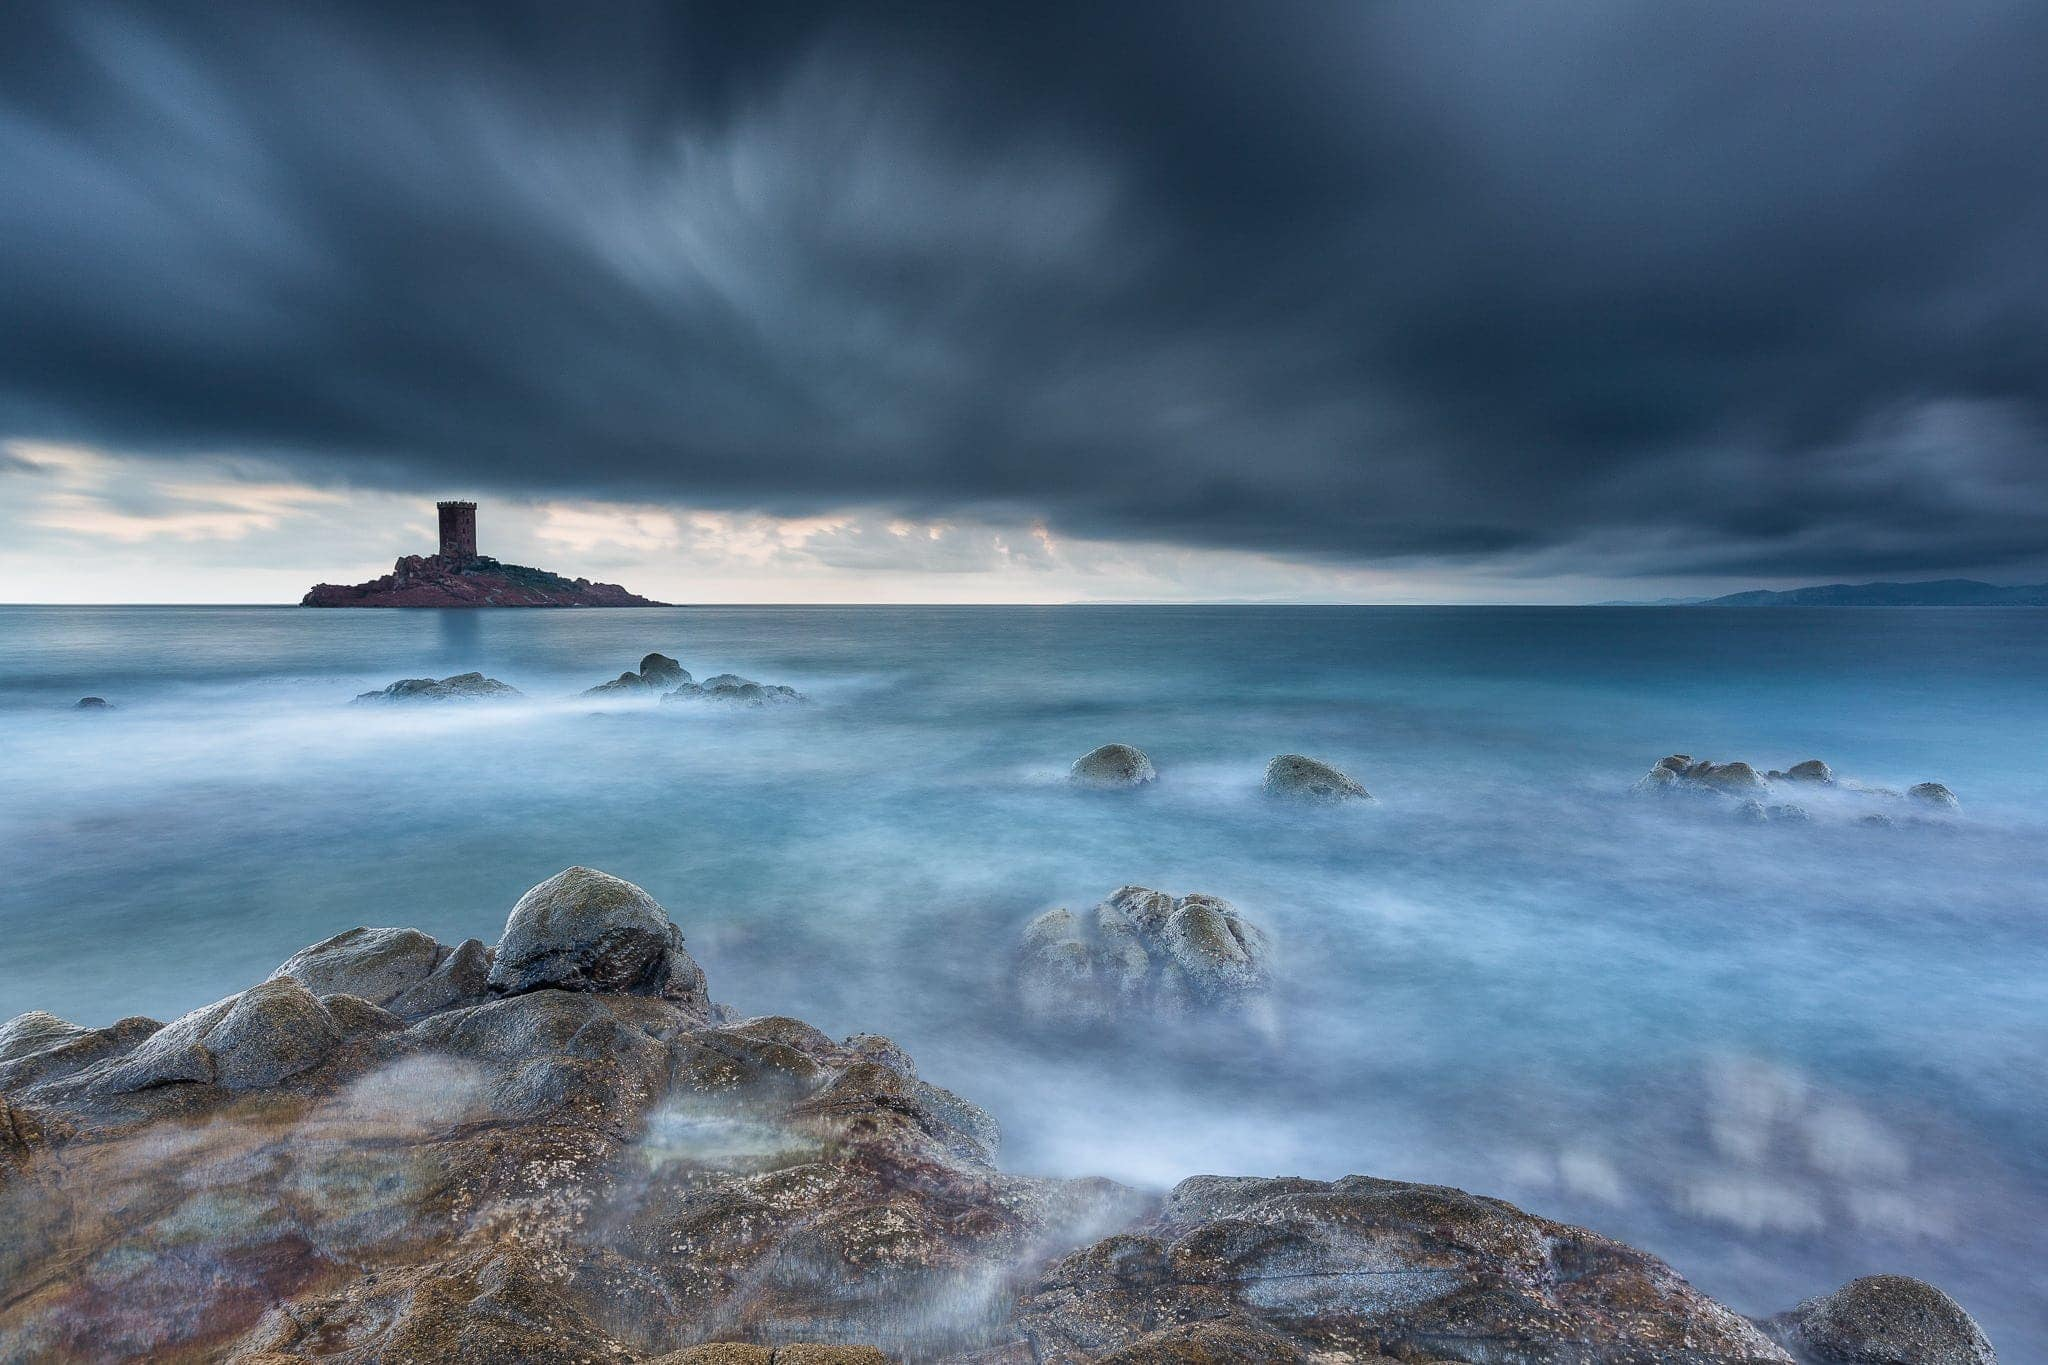 Francesco Gola Seascape Landscape Photography Long Exposure Stormy Cote Azur Dramont France